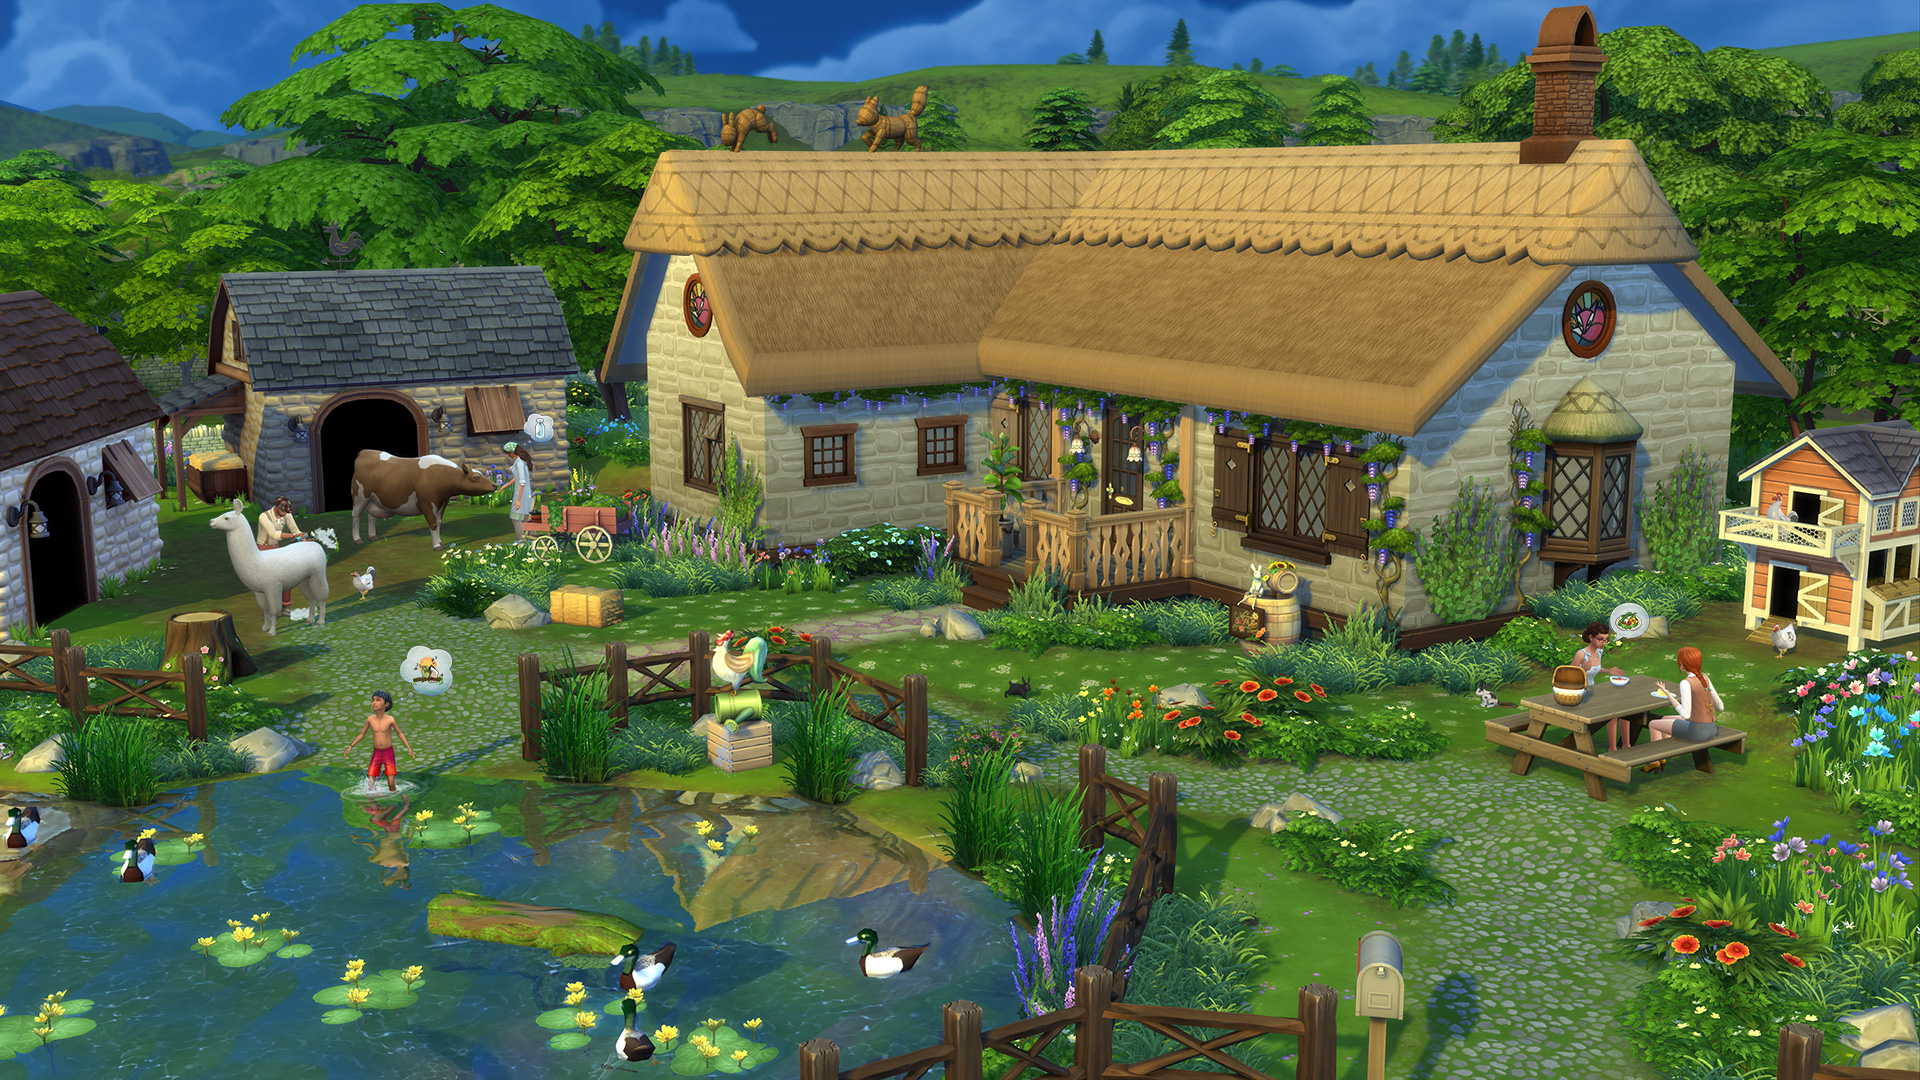 The Sims 4 Cottage Living - Farmhouse